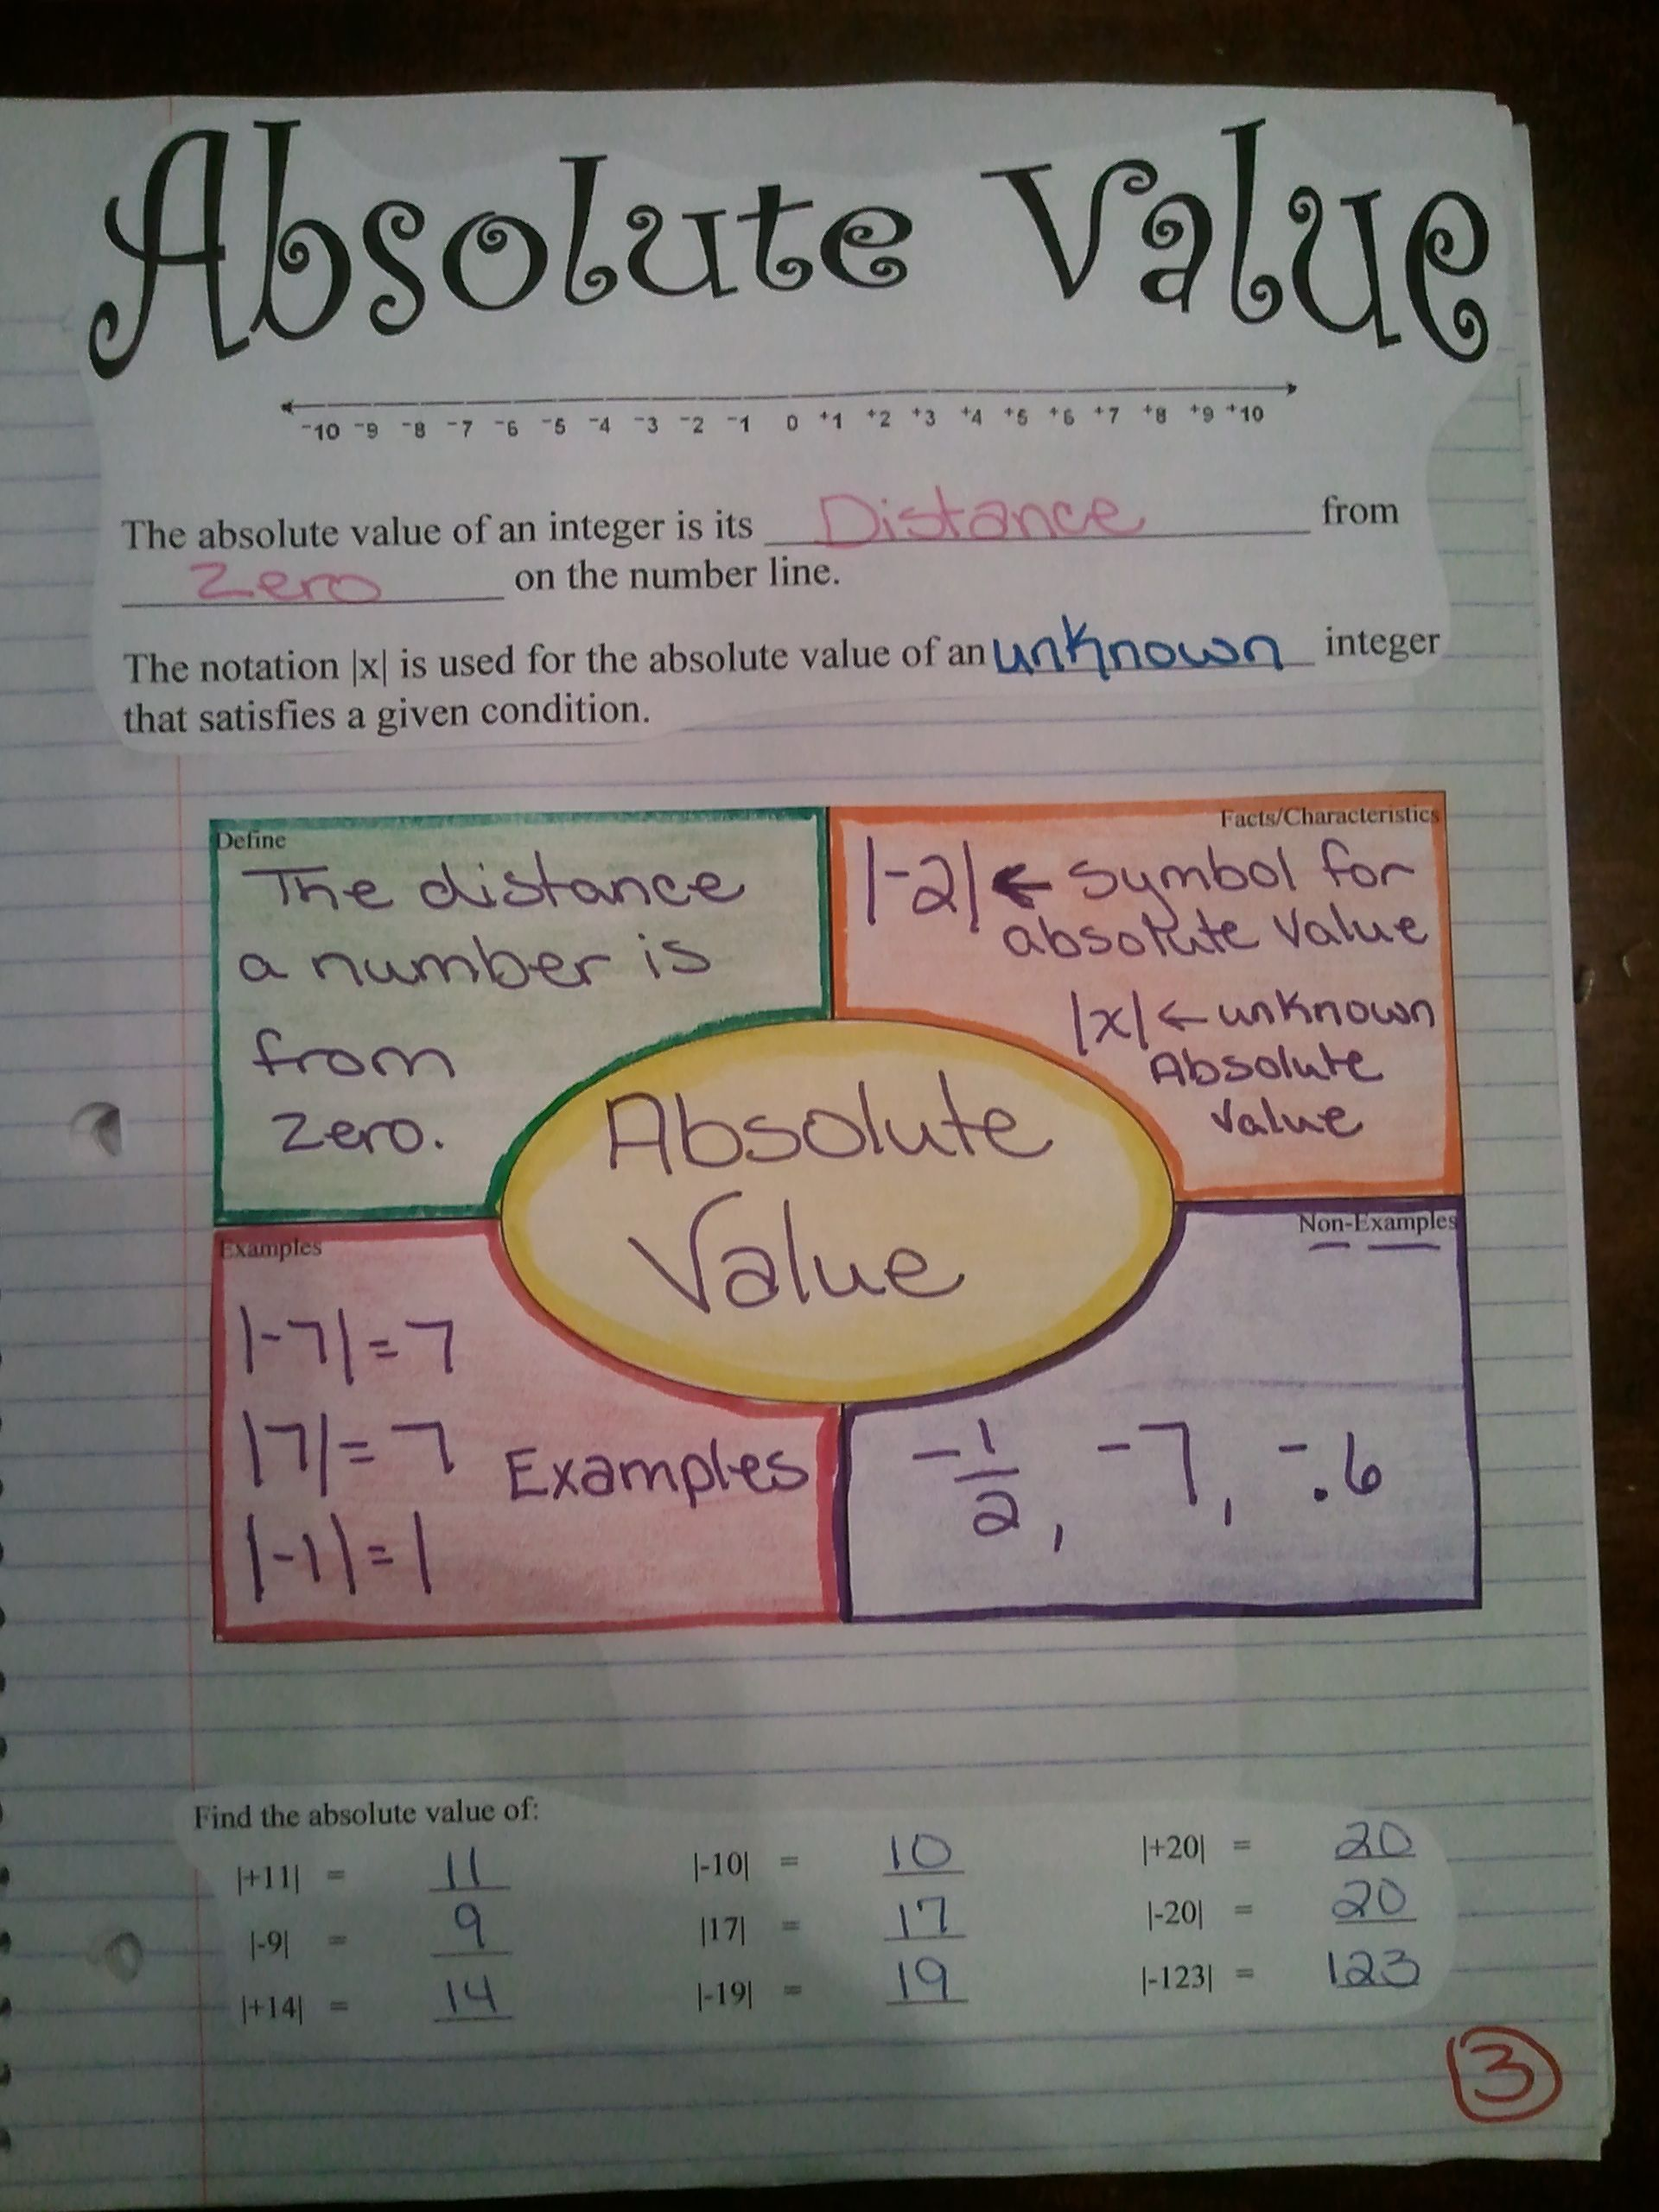 Absolute Value Machine Project